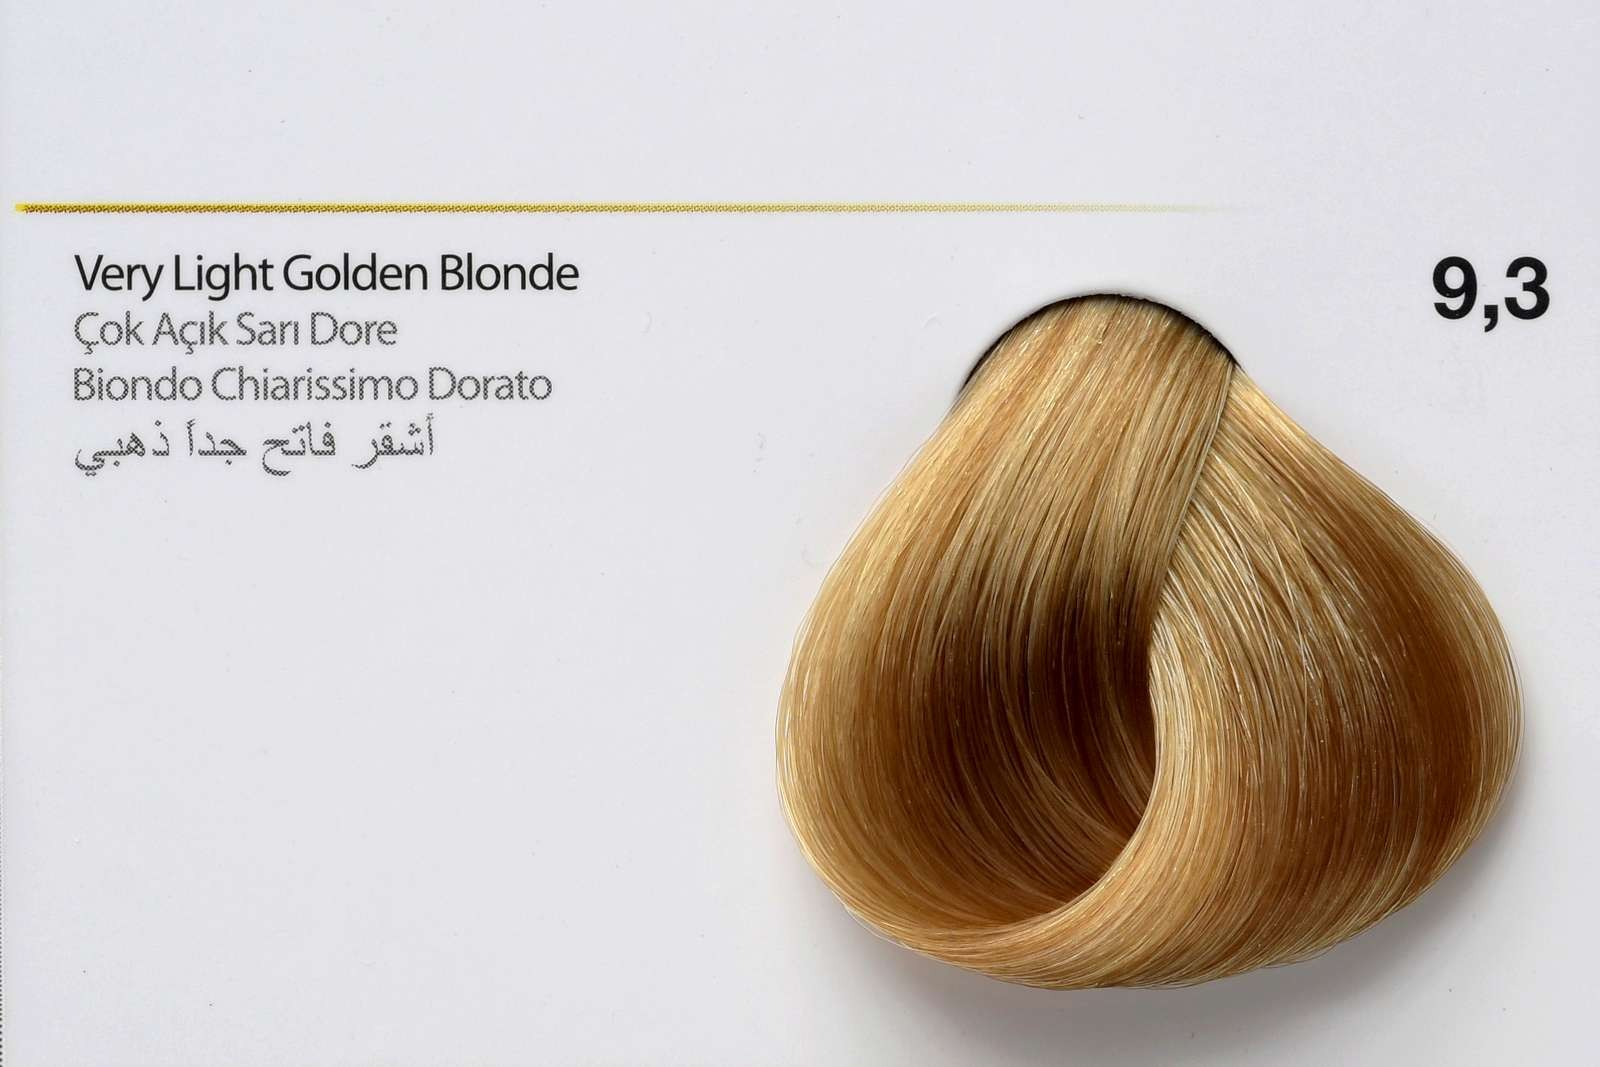 9,3 - Very Light Golden Blonde